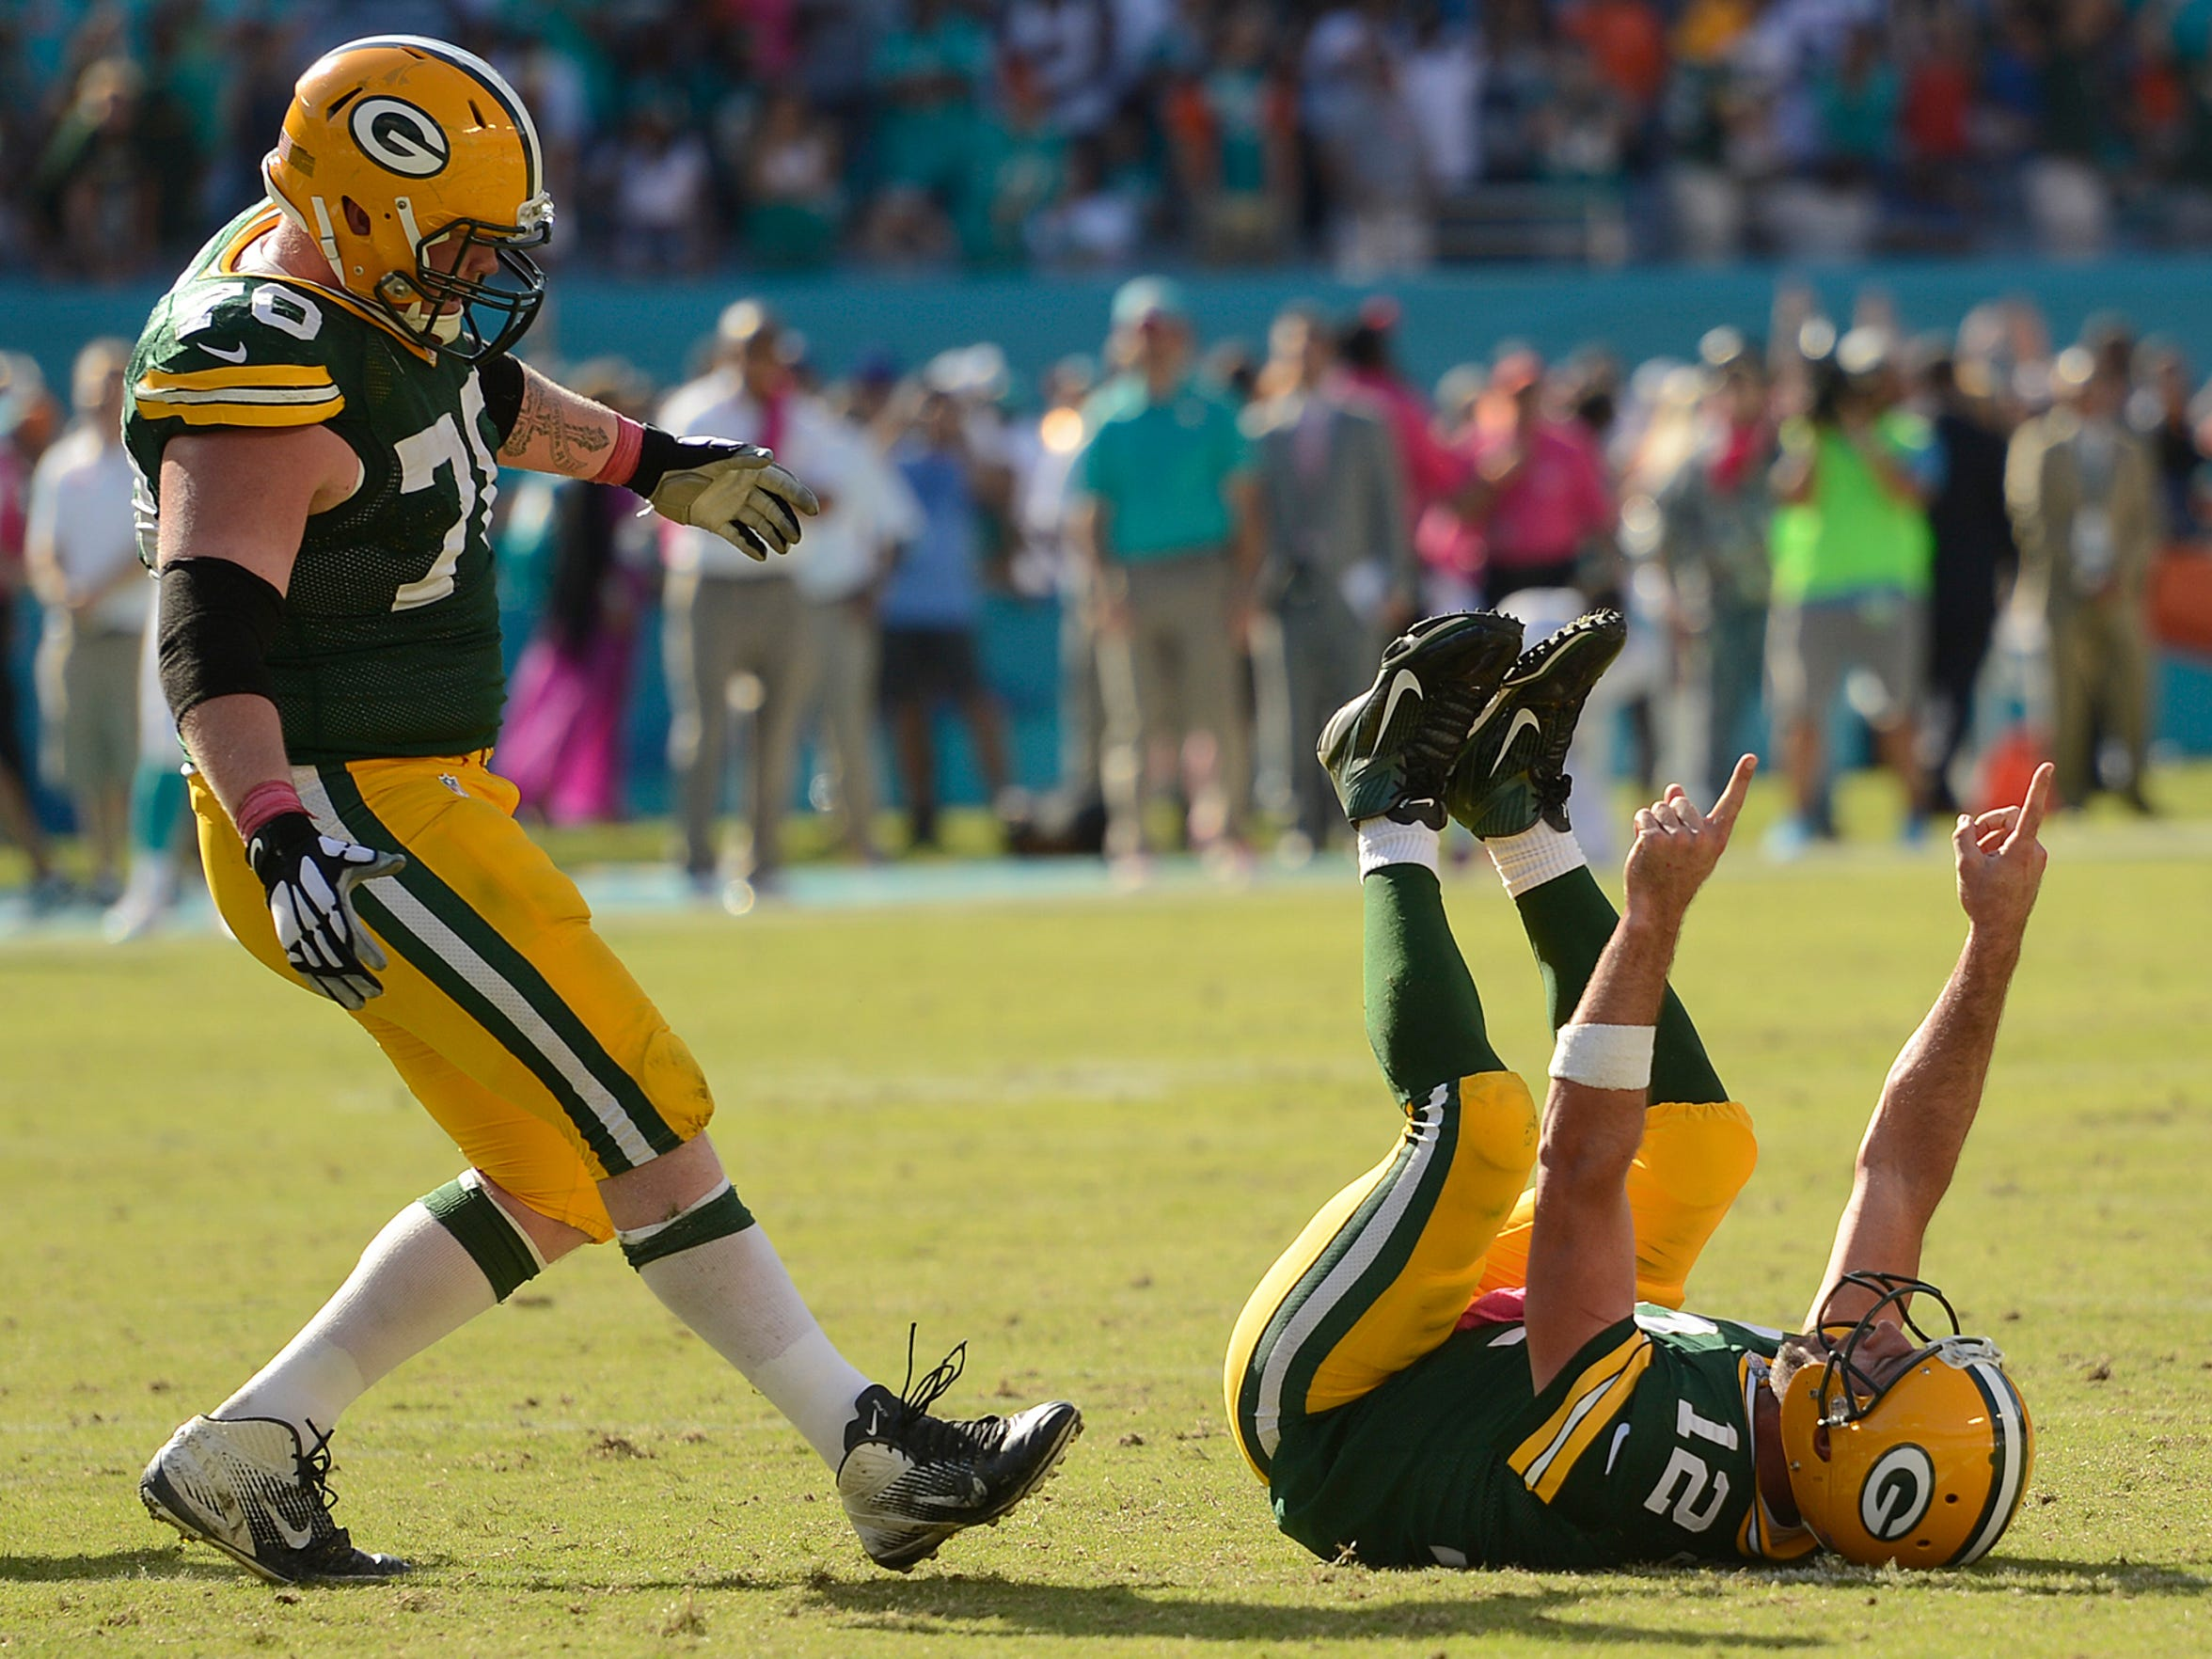 Packers quarterback Aaron Rodgers celebrates after